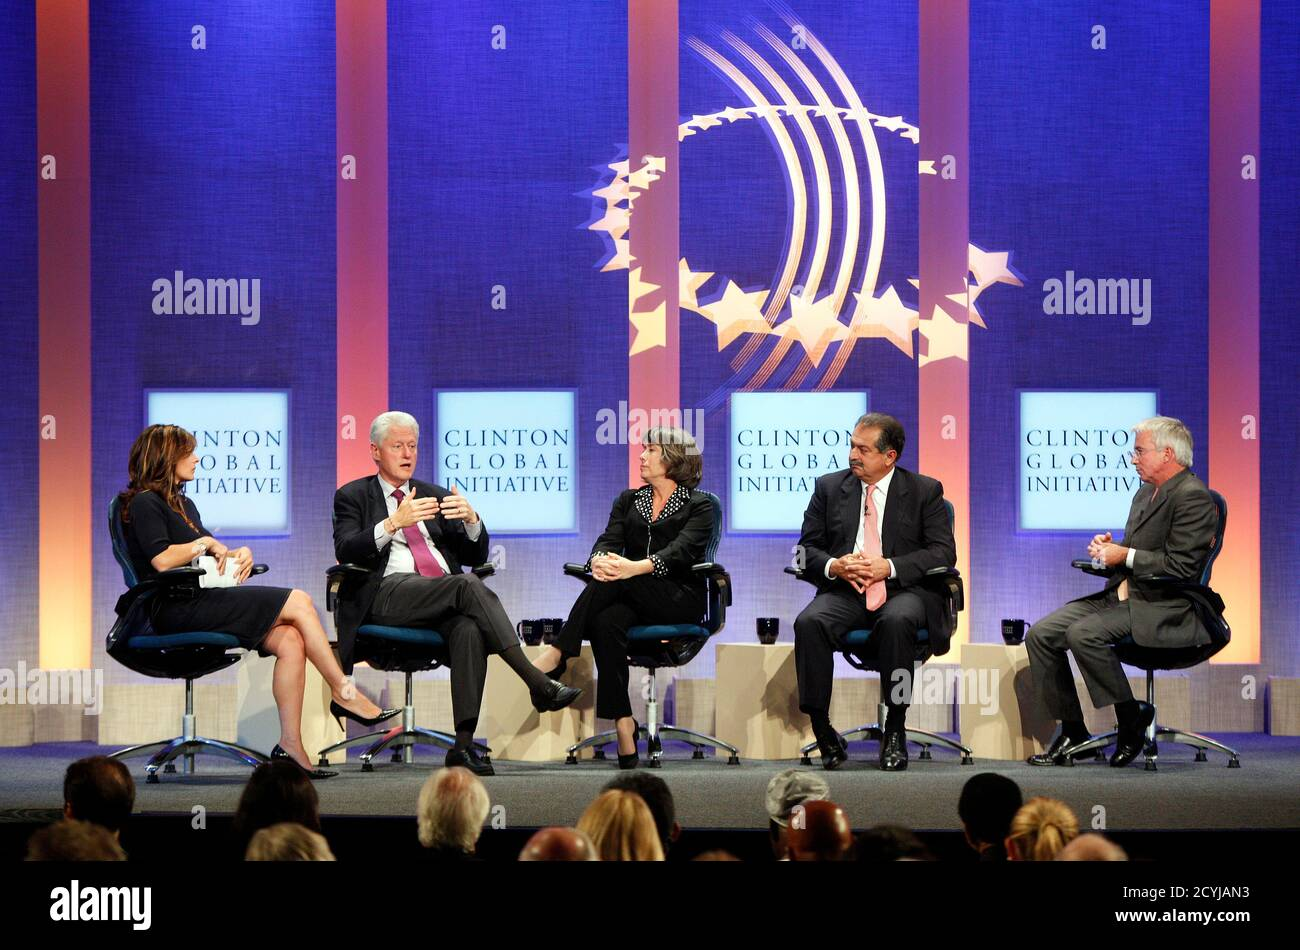 """Former U.S. President Bill Clinton (2nd L) answers a question from television reporter Maria Bartiromo (L) of CNBC, as Sheila Bair (C), Chairman of the Federal Deposit Insurance Corporation, Andrew Liveris (2nd R), Chairman and Chief Executive Officer of The Dow Chemical Company, and Peter Sands, Group Chief Executive for Standard Chartered Bank, listen during the taping of a program titled """"Meeting of the Minds,"""" at the Clinton Global Initiative in New York September 22, 2010.  REUTERS/Chip East (UNITED STATES - Tags: POLITICS BUSINESS SOCIETY) Stock Photo"""